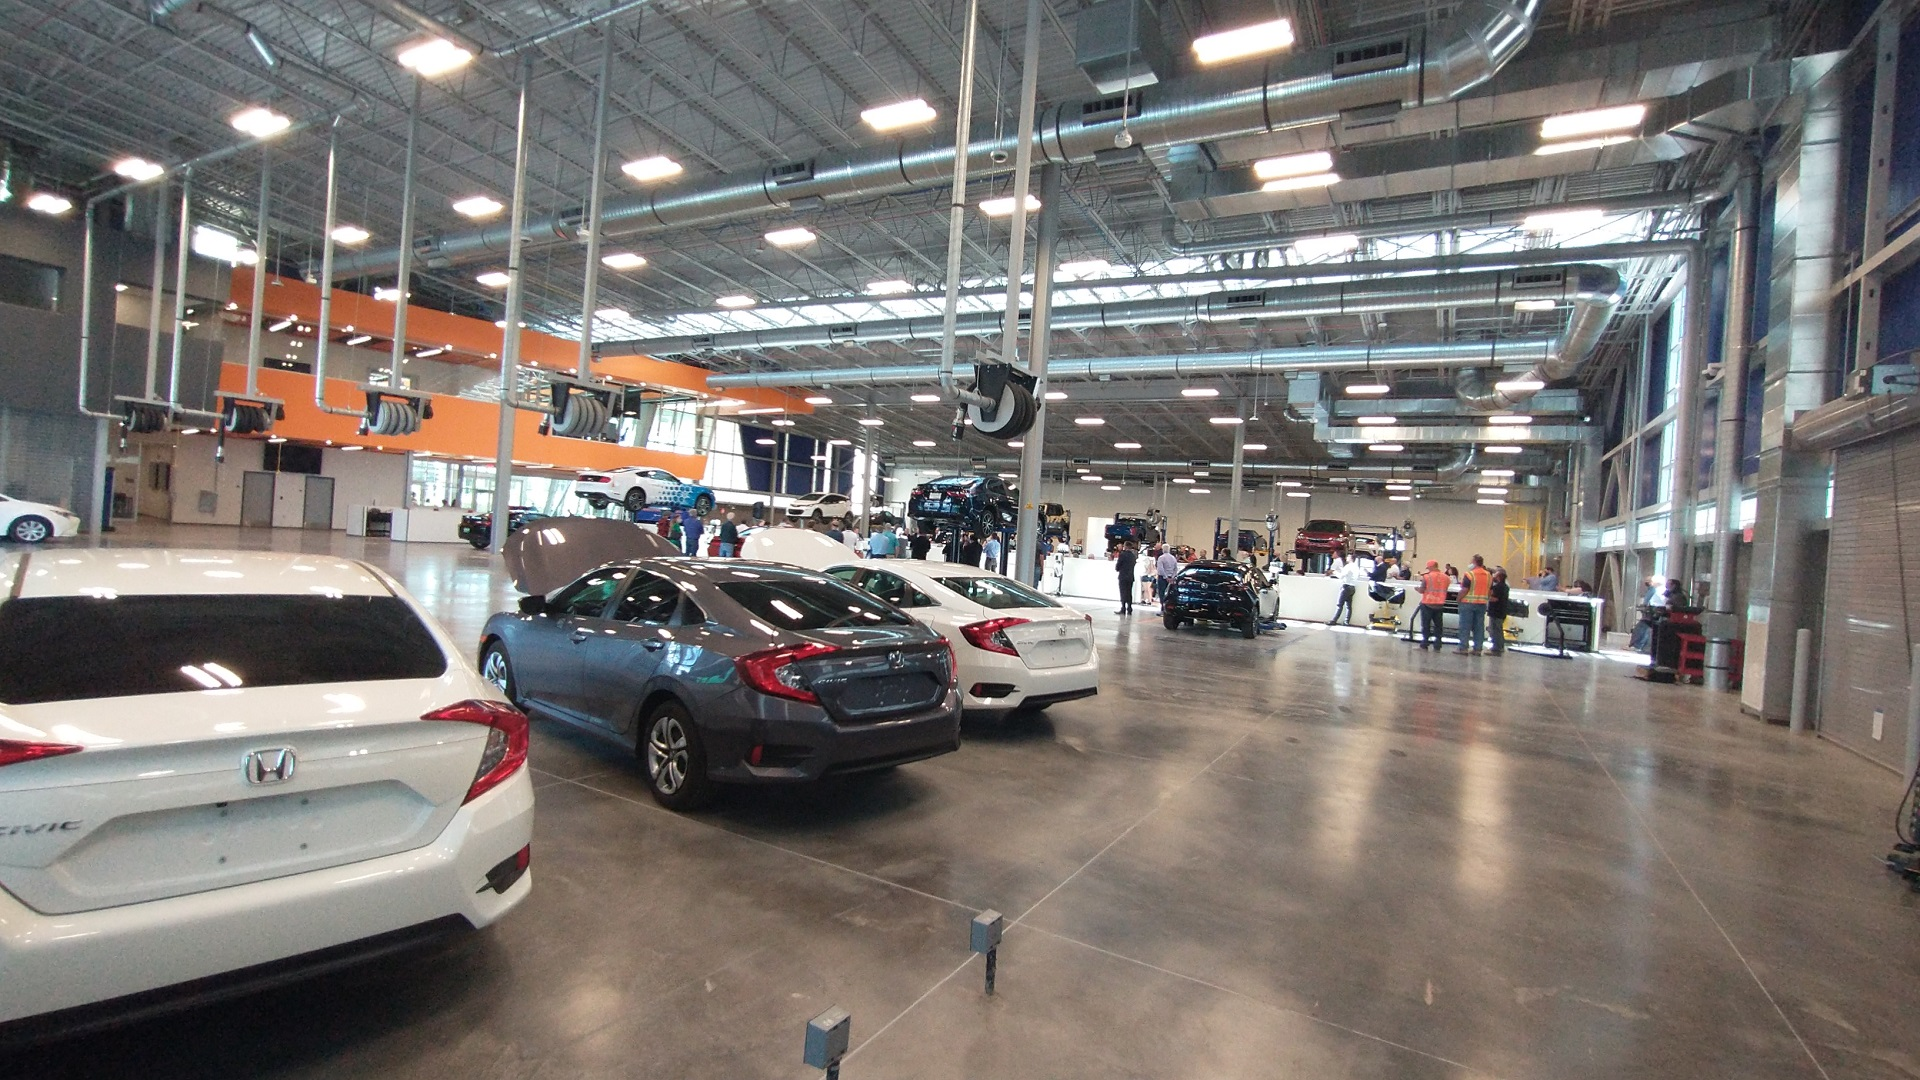 The new Automotive Technology and Innovation Center at Pima Community College was dedicated in May 18, 2021.  The center will offer students education in the technology of both internal combustion and electric vehicles.